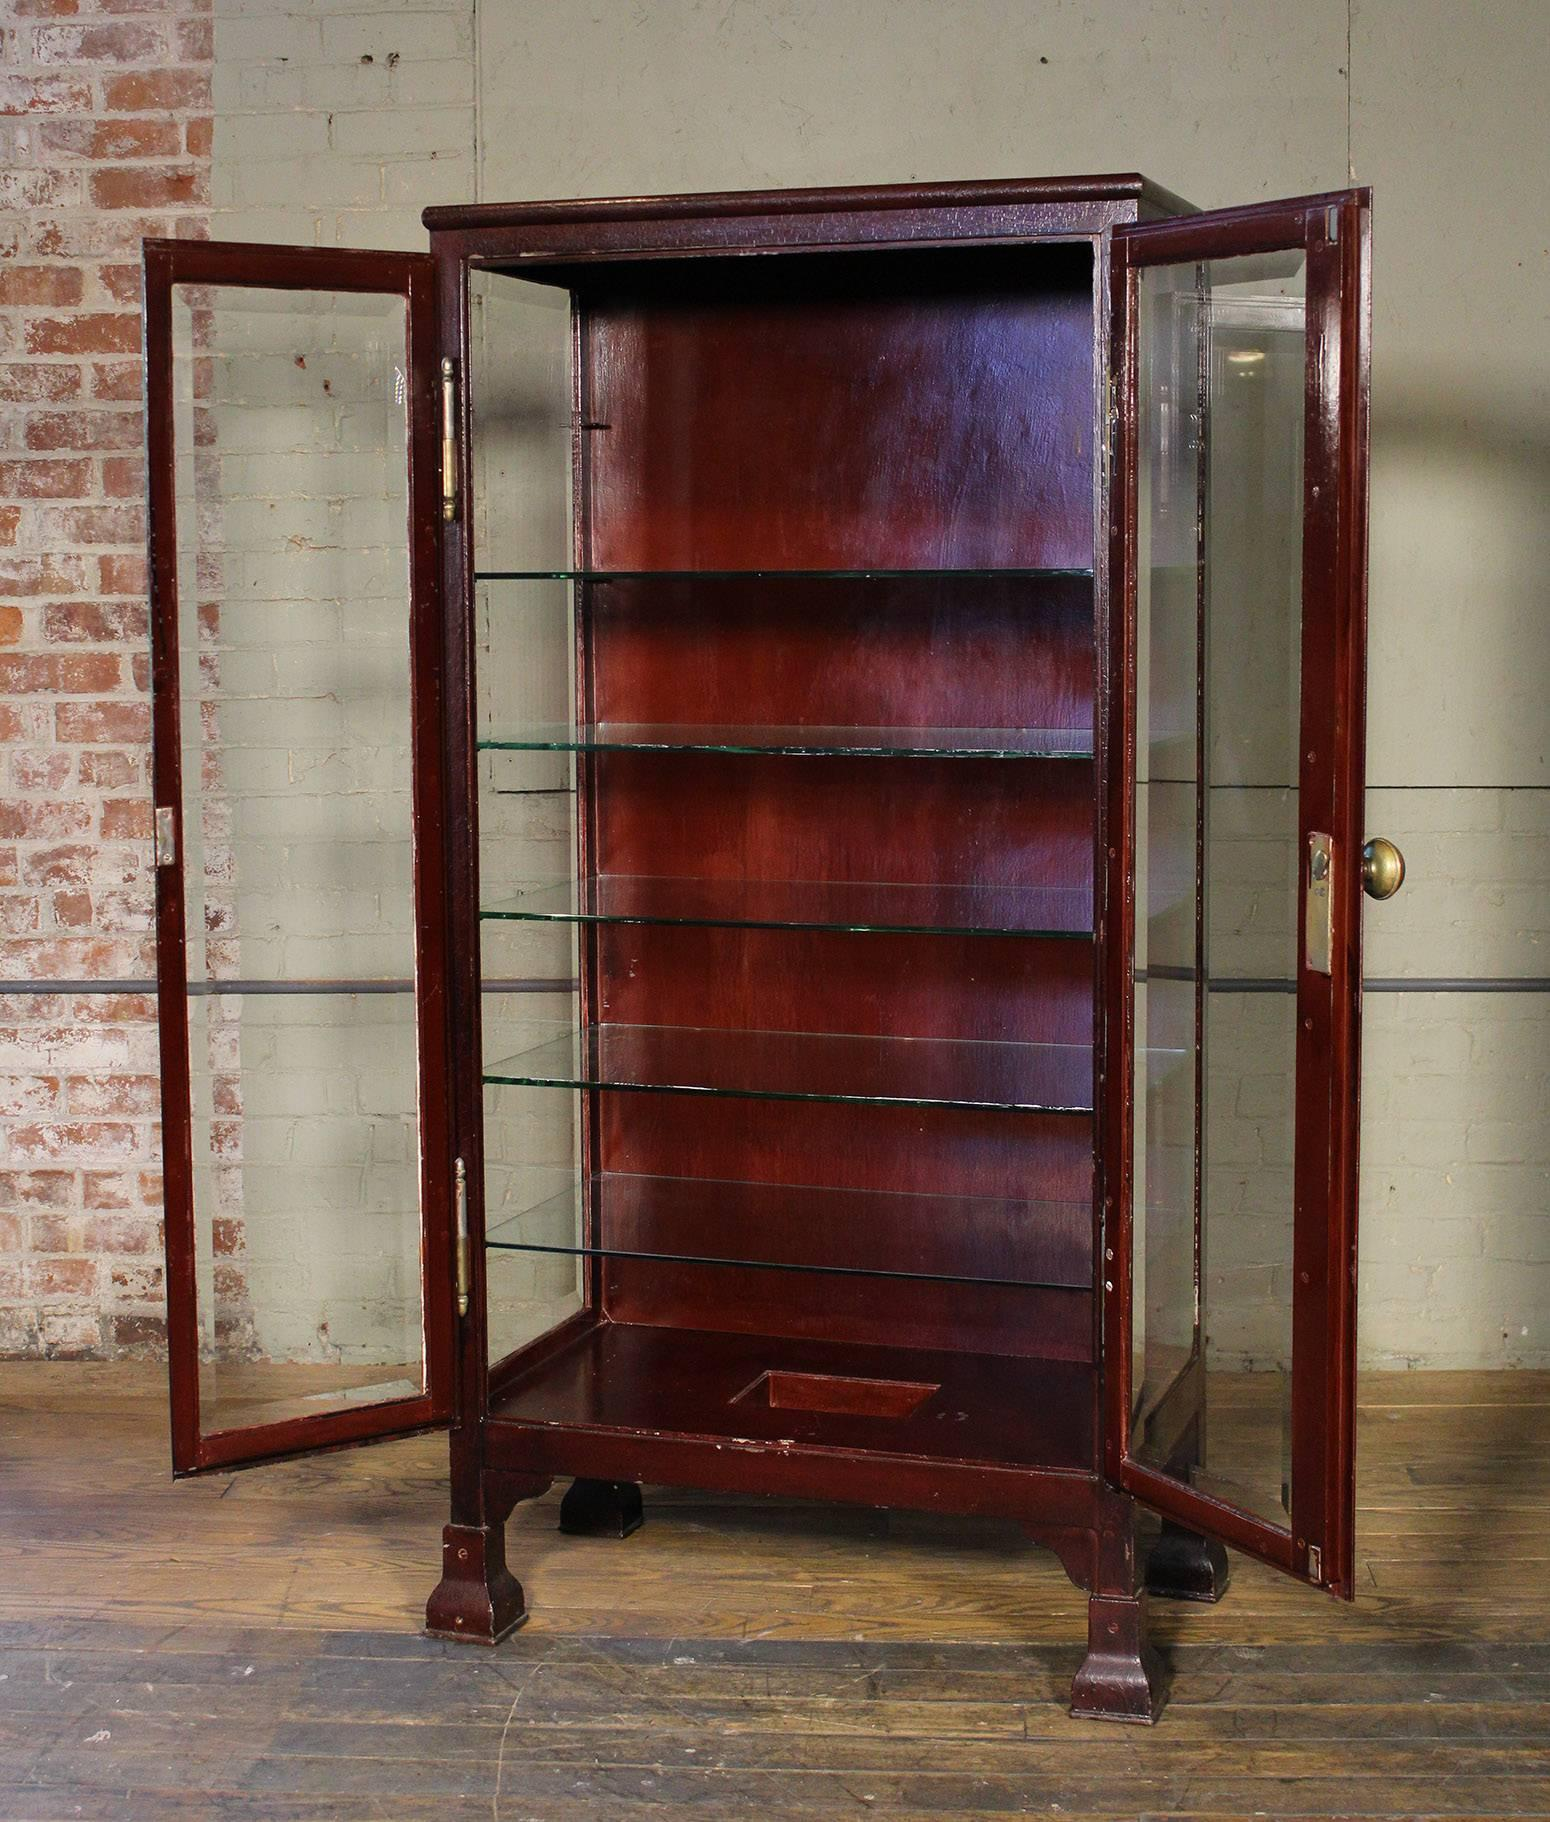 Mission Curio Cabinet Glass And Metal Medical Storage Vintage Industrial  Cupboard Unit For Sale